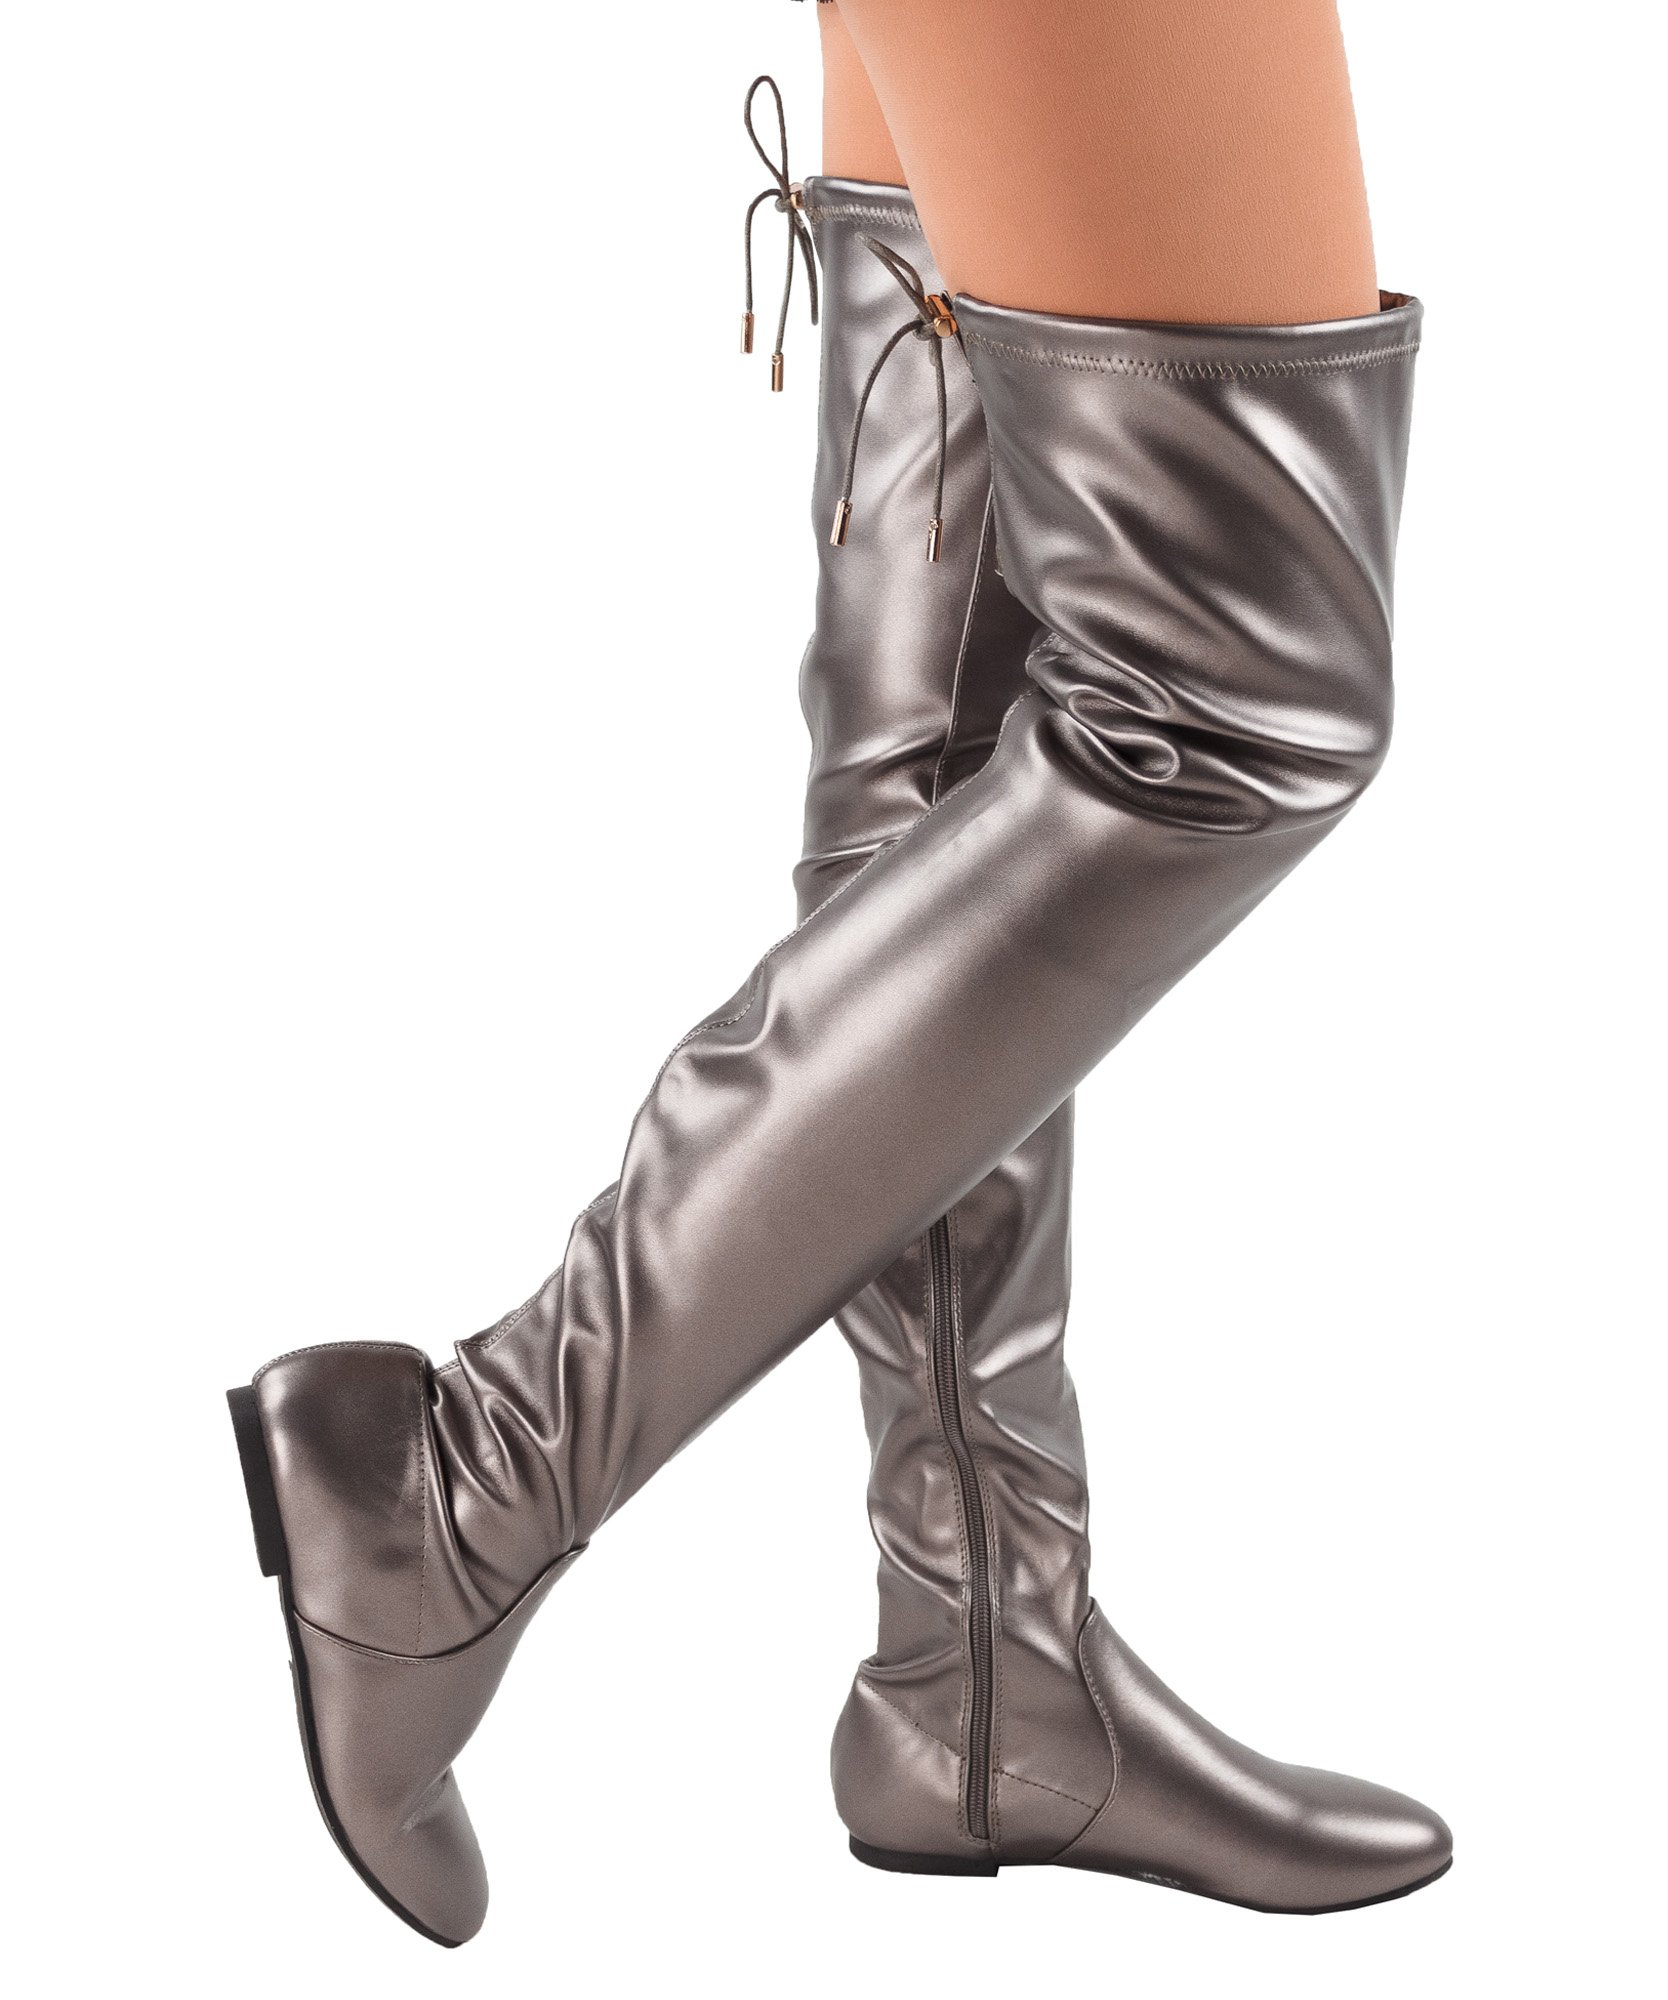 RF ROOM OF FASHION Women Fashion Comfy Vegan Leather Side Zipper Over The Knee Boots - NA22 Pewter (8.5)